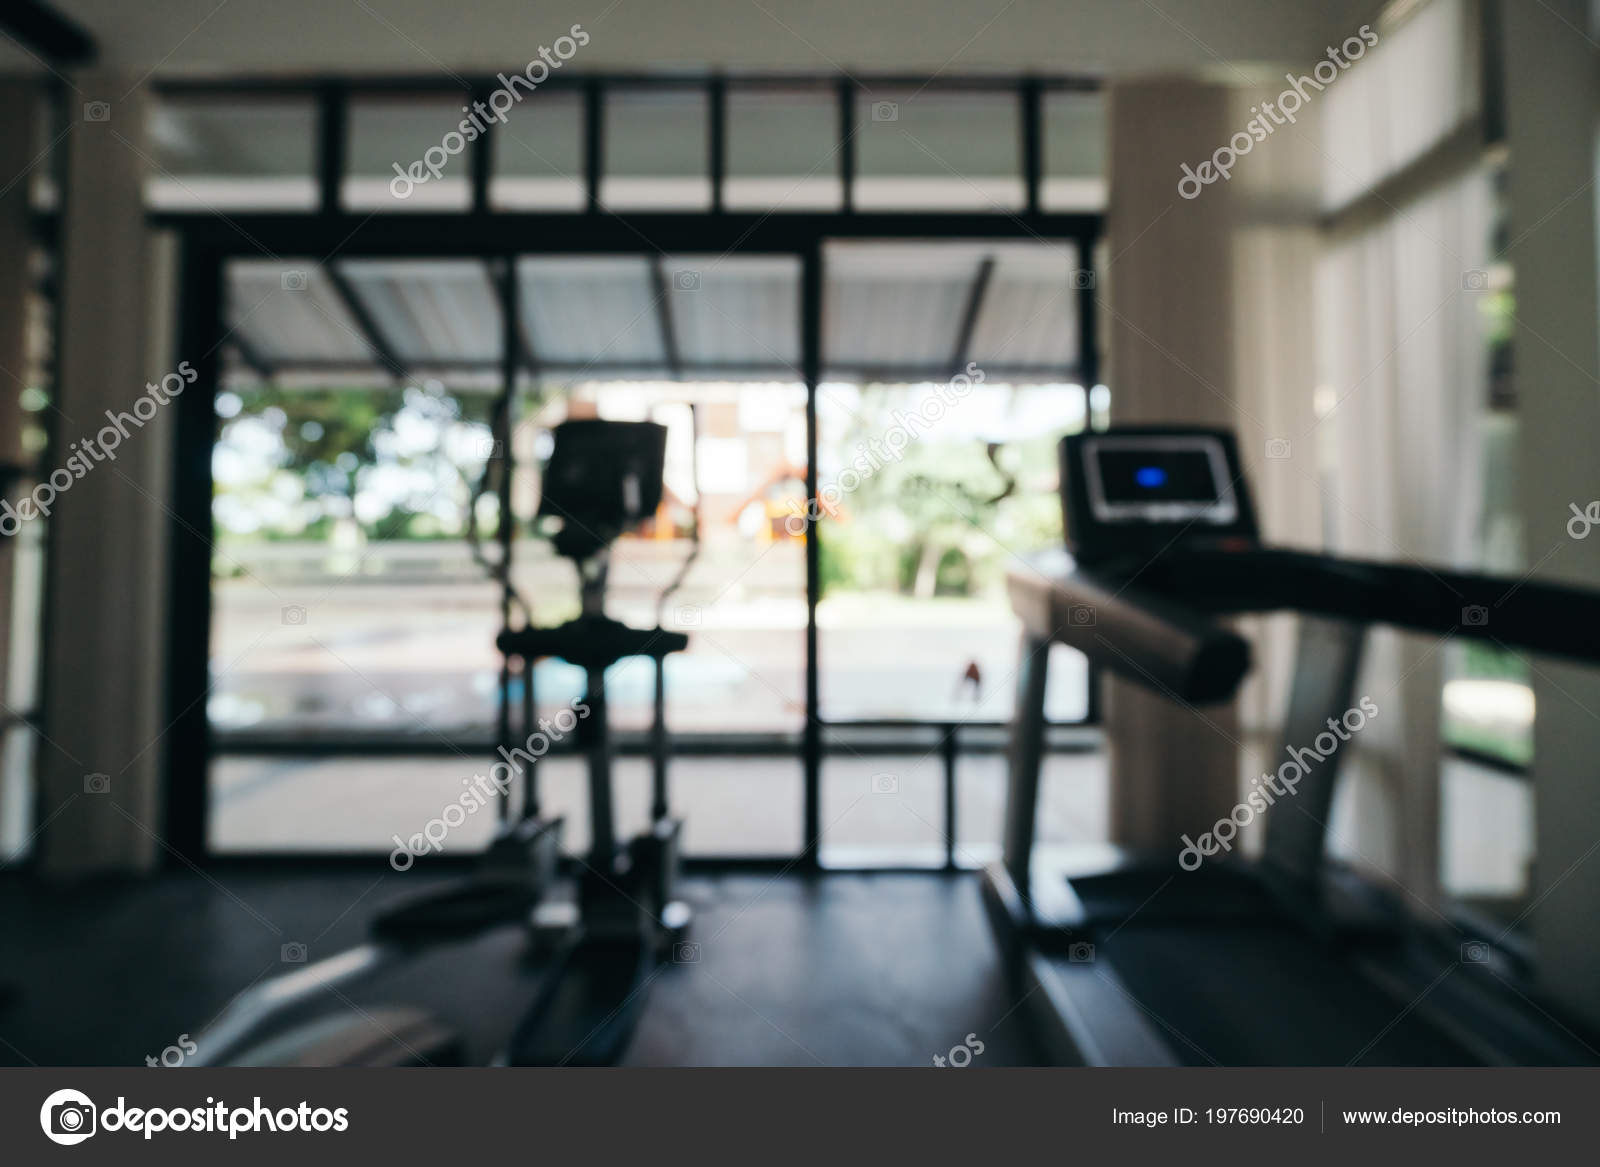 Abstract blur defocused fitness equipment interior gym room